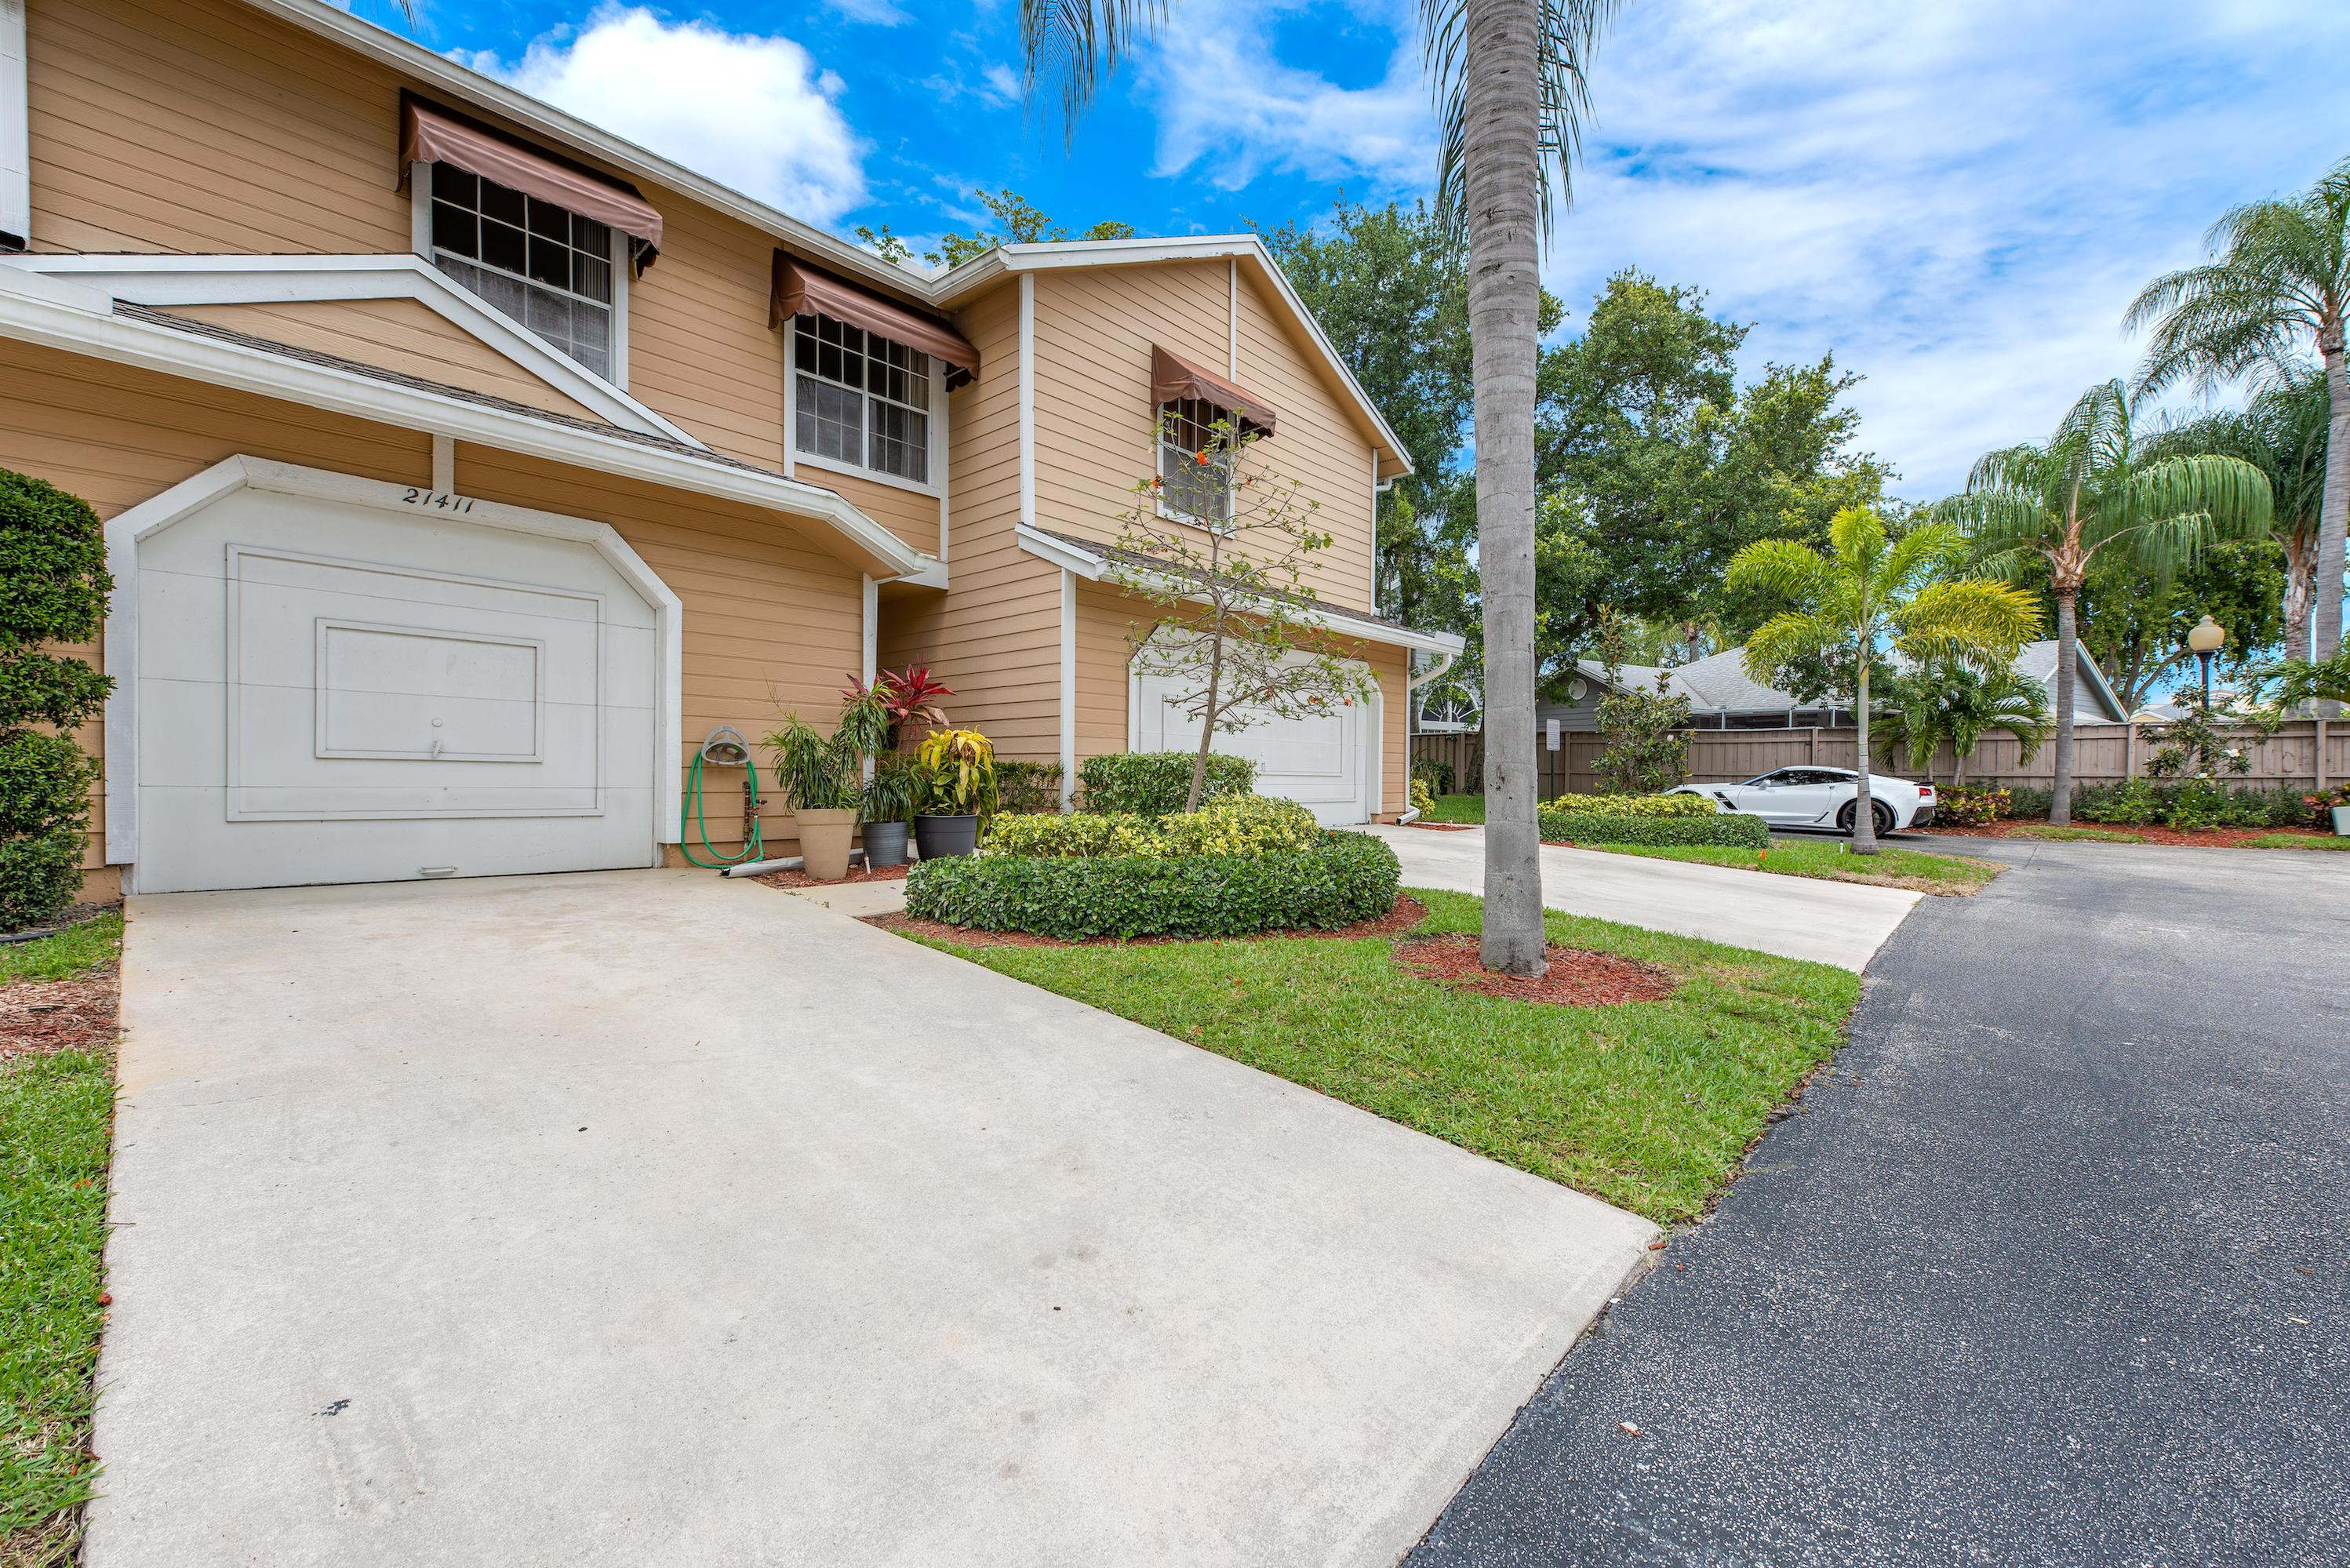 21411 Tudor Drive,Boca Raton,Florida 33486,3 Bedrooms Bedrooms,2 BathroomsBathrooms,Townhouse,Tudor,RX-10618521